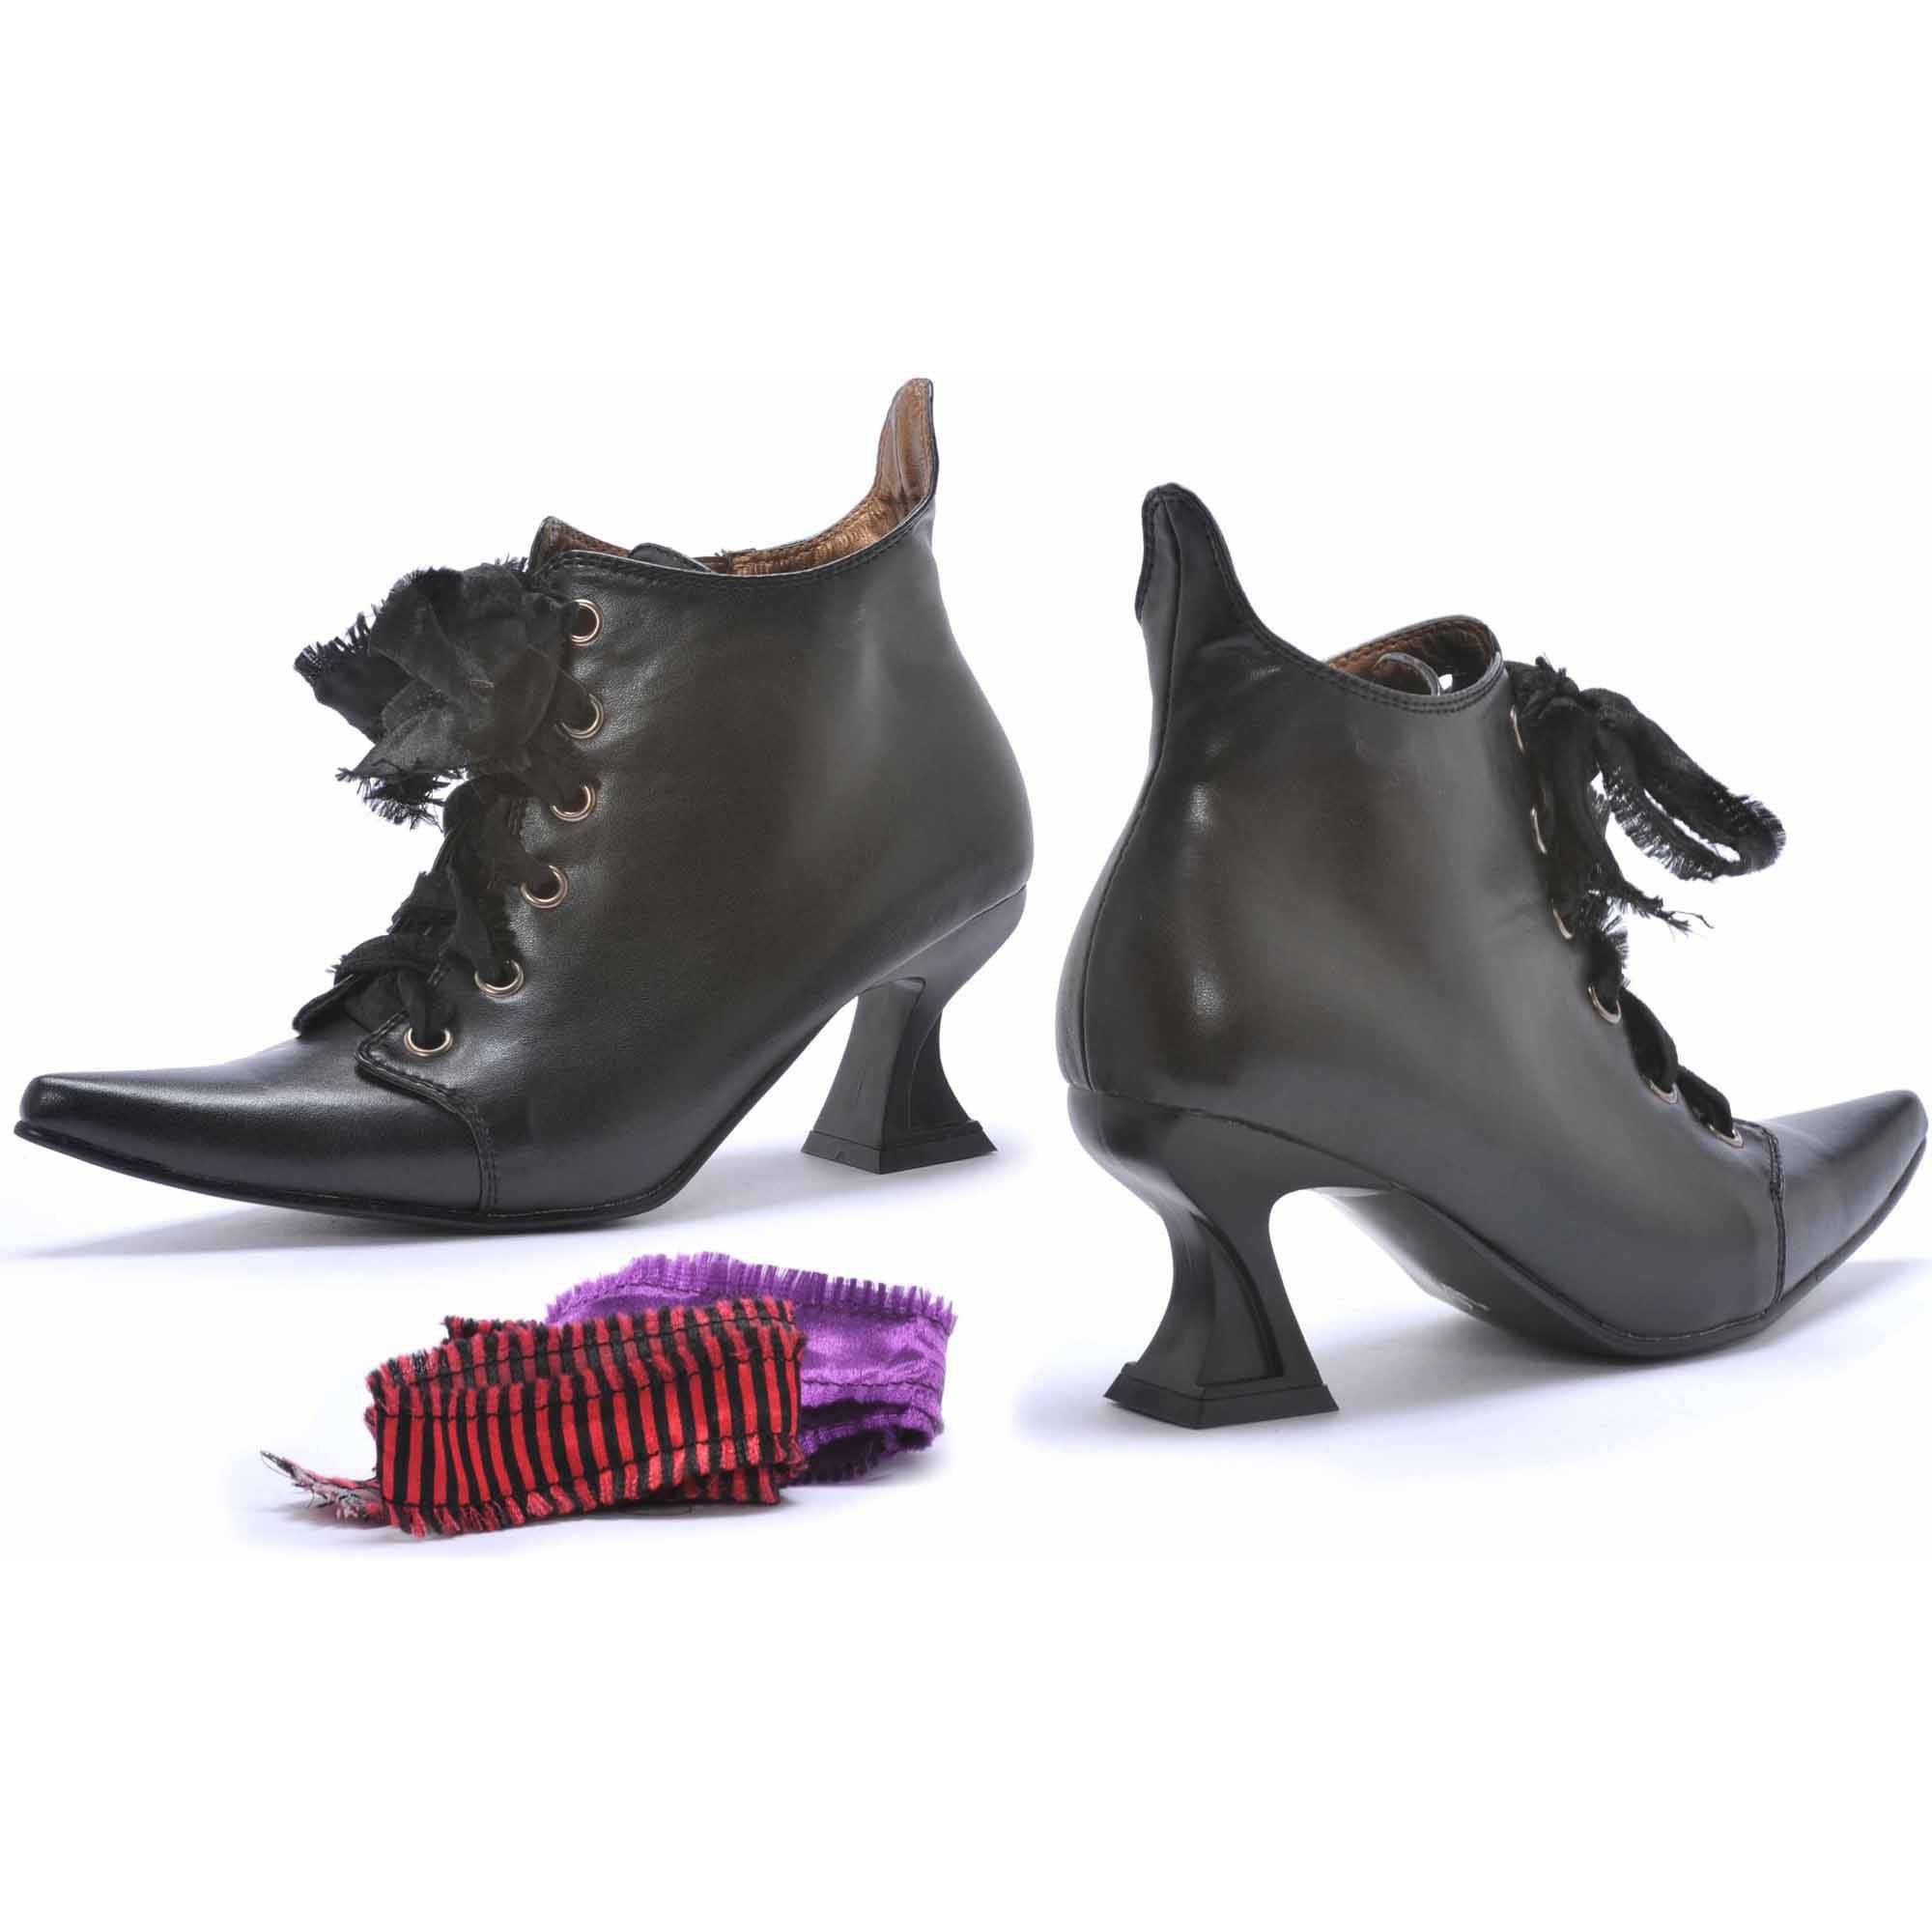 Witch Boots Women's Adult Halloween Costume Accessory